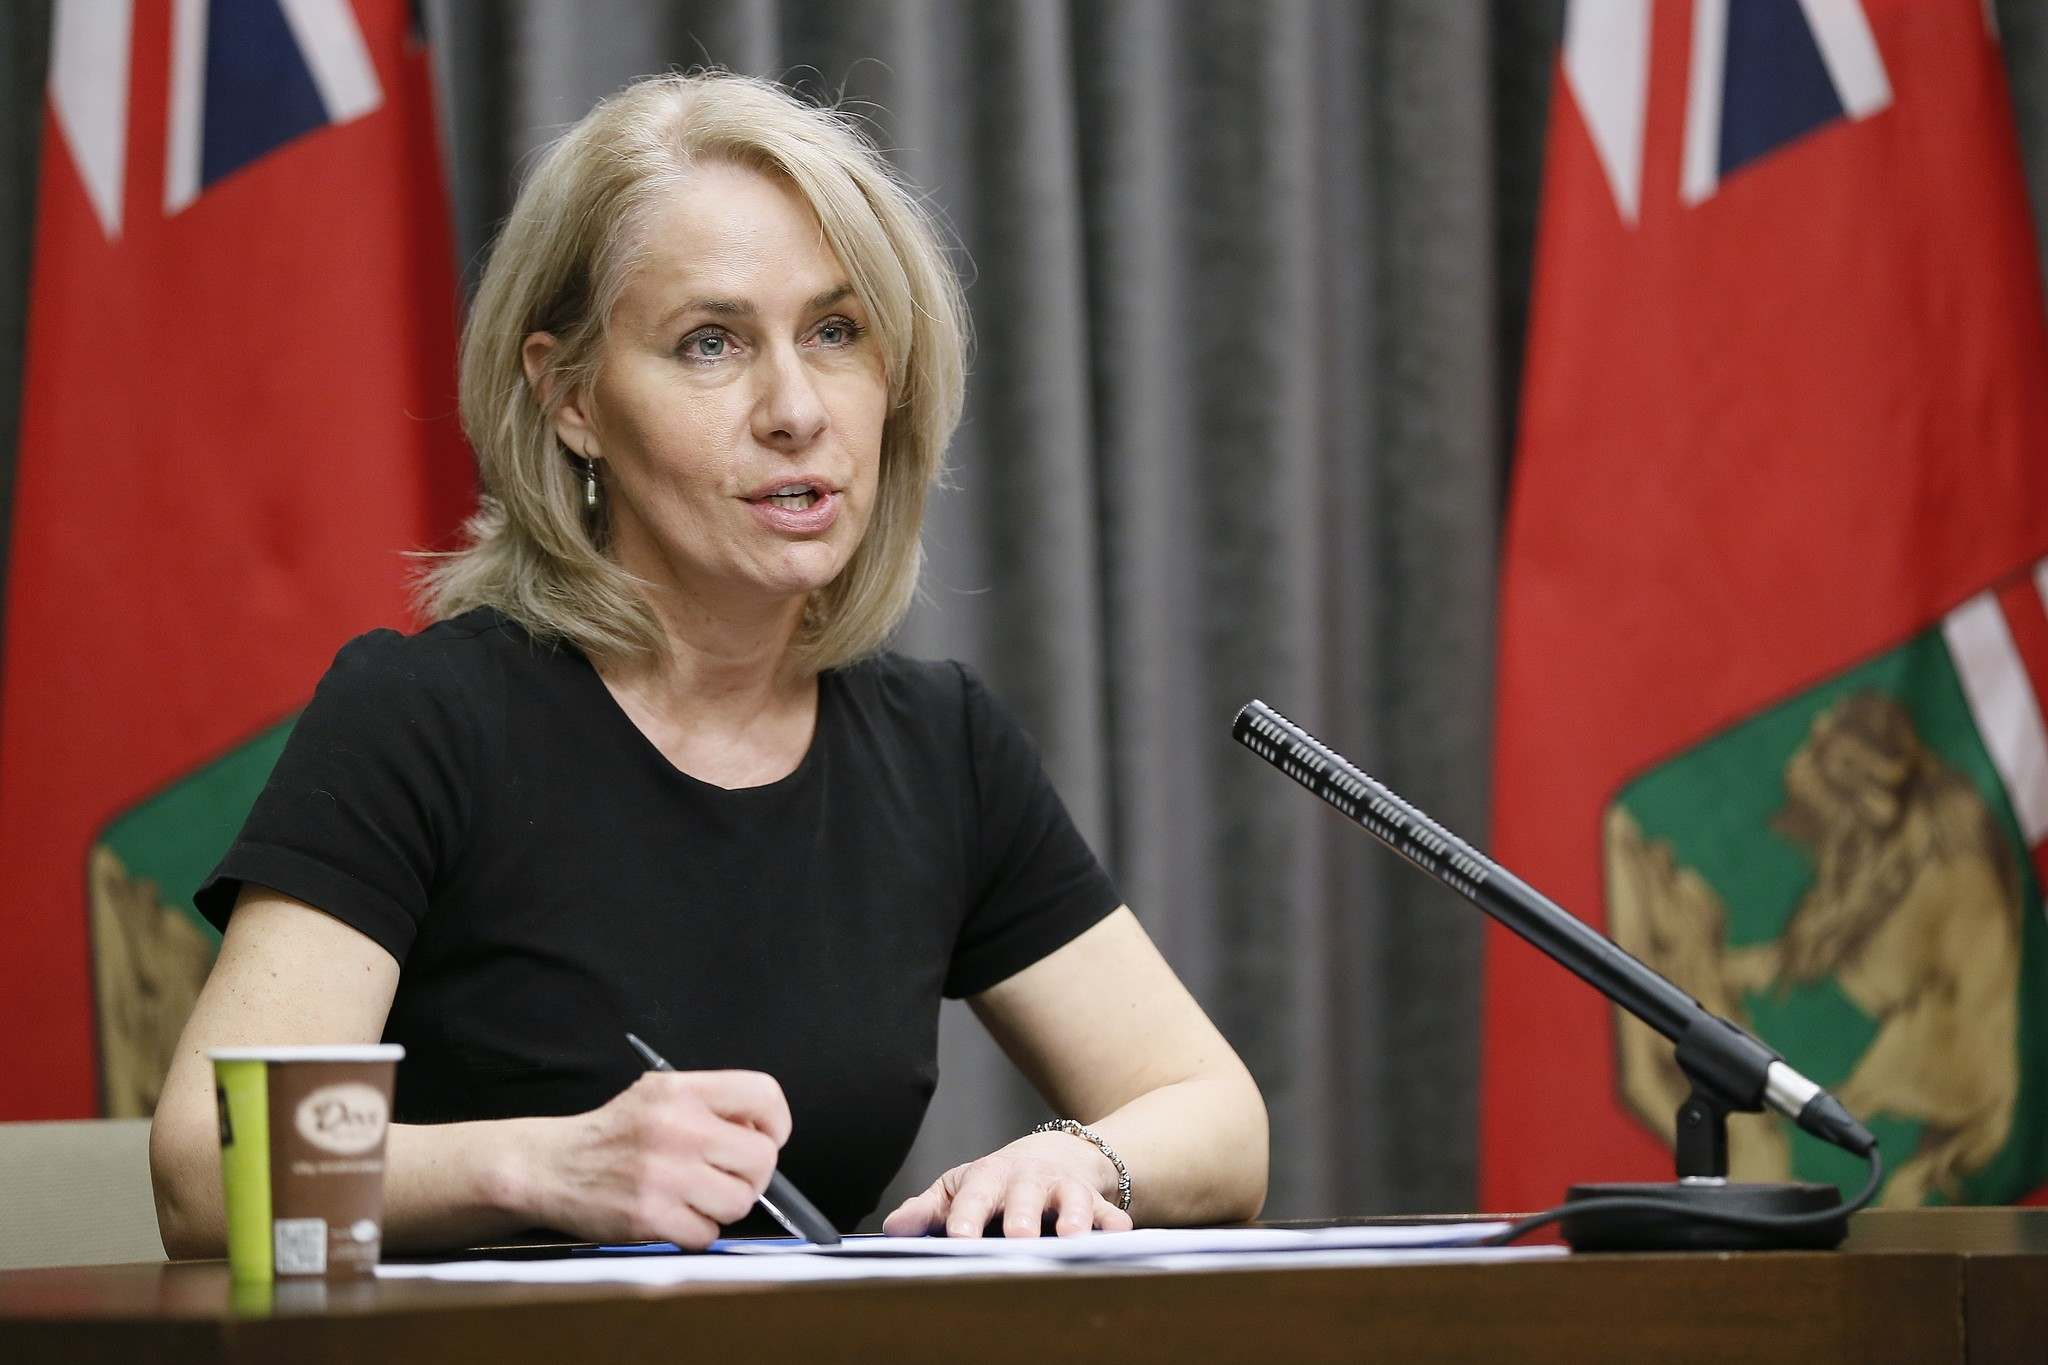 """The isolation centres are for those who may require some additional support as they self isolate,"" Chief Nursing Officer Lanette Siragusa said during the province's daily news conference on Saturday. (Daniel Crump / Winnipeg Free Press files)</p></p>"